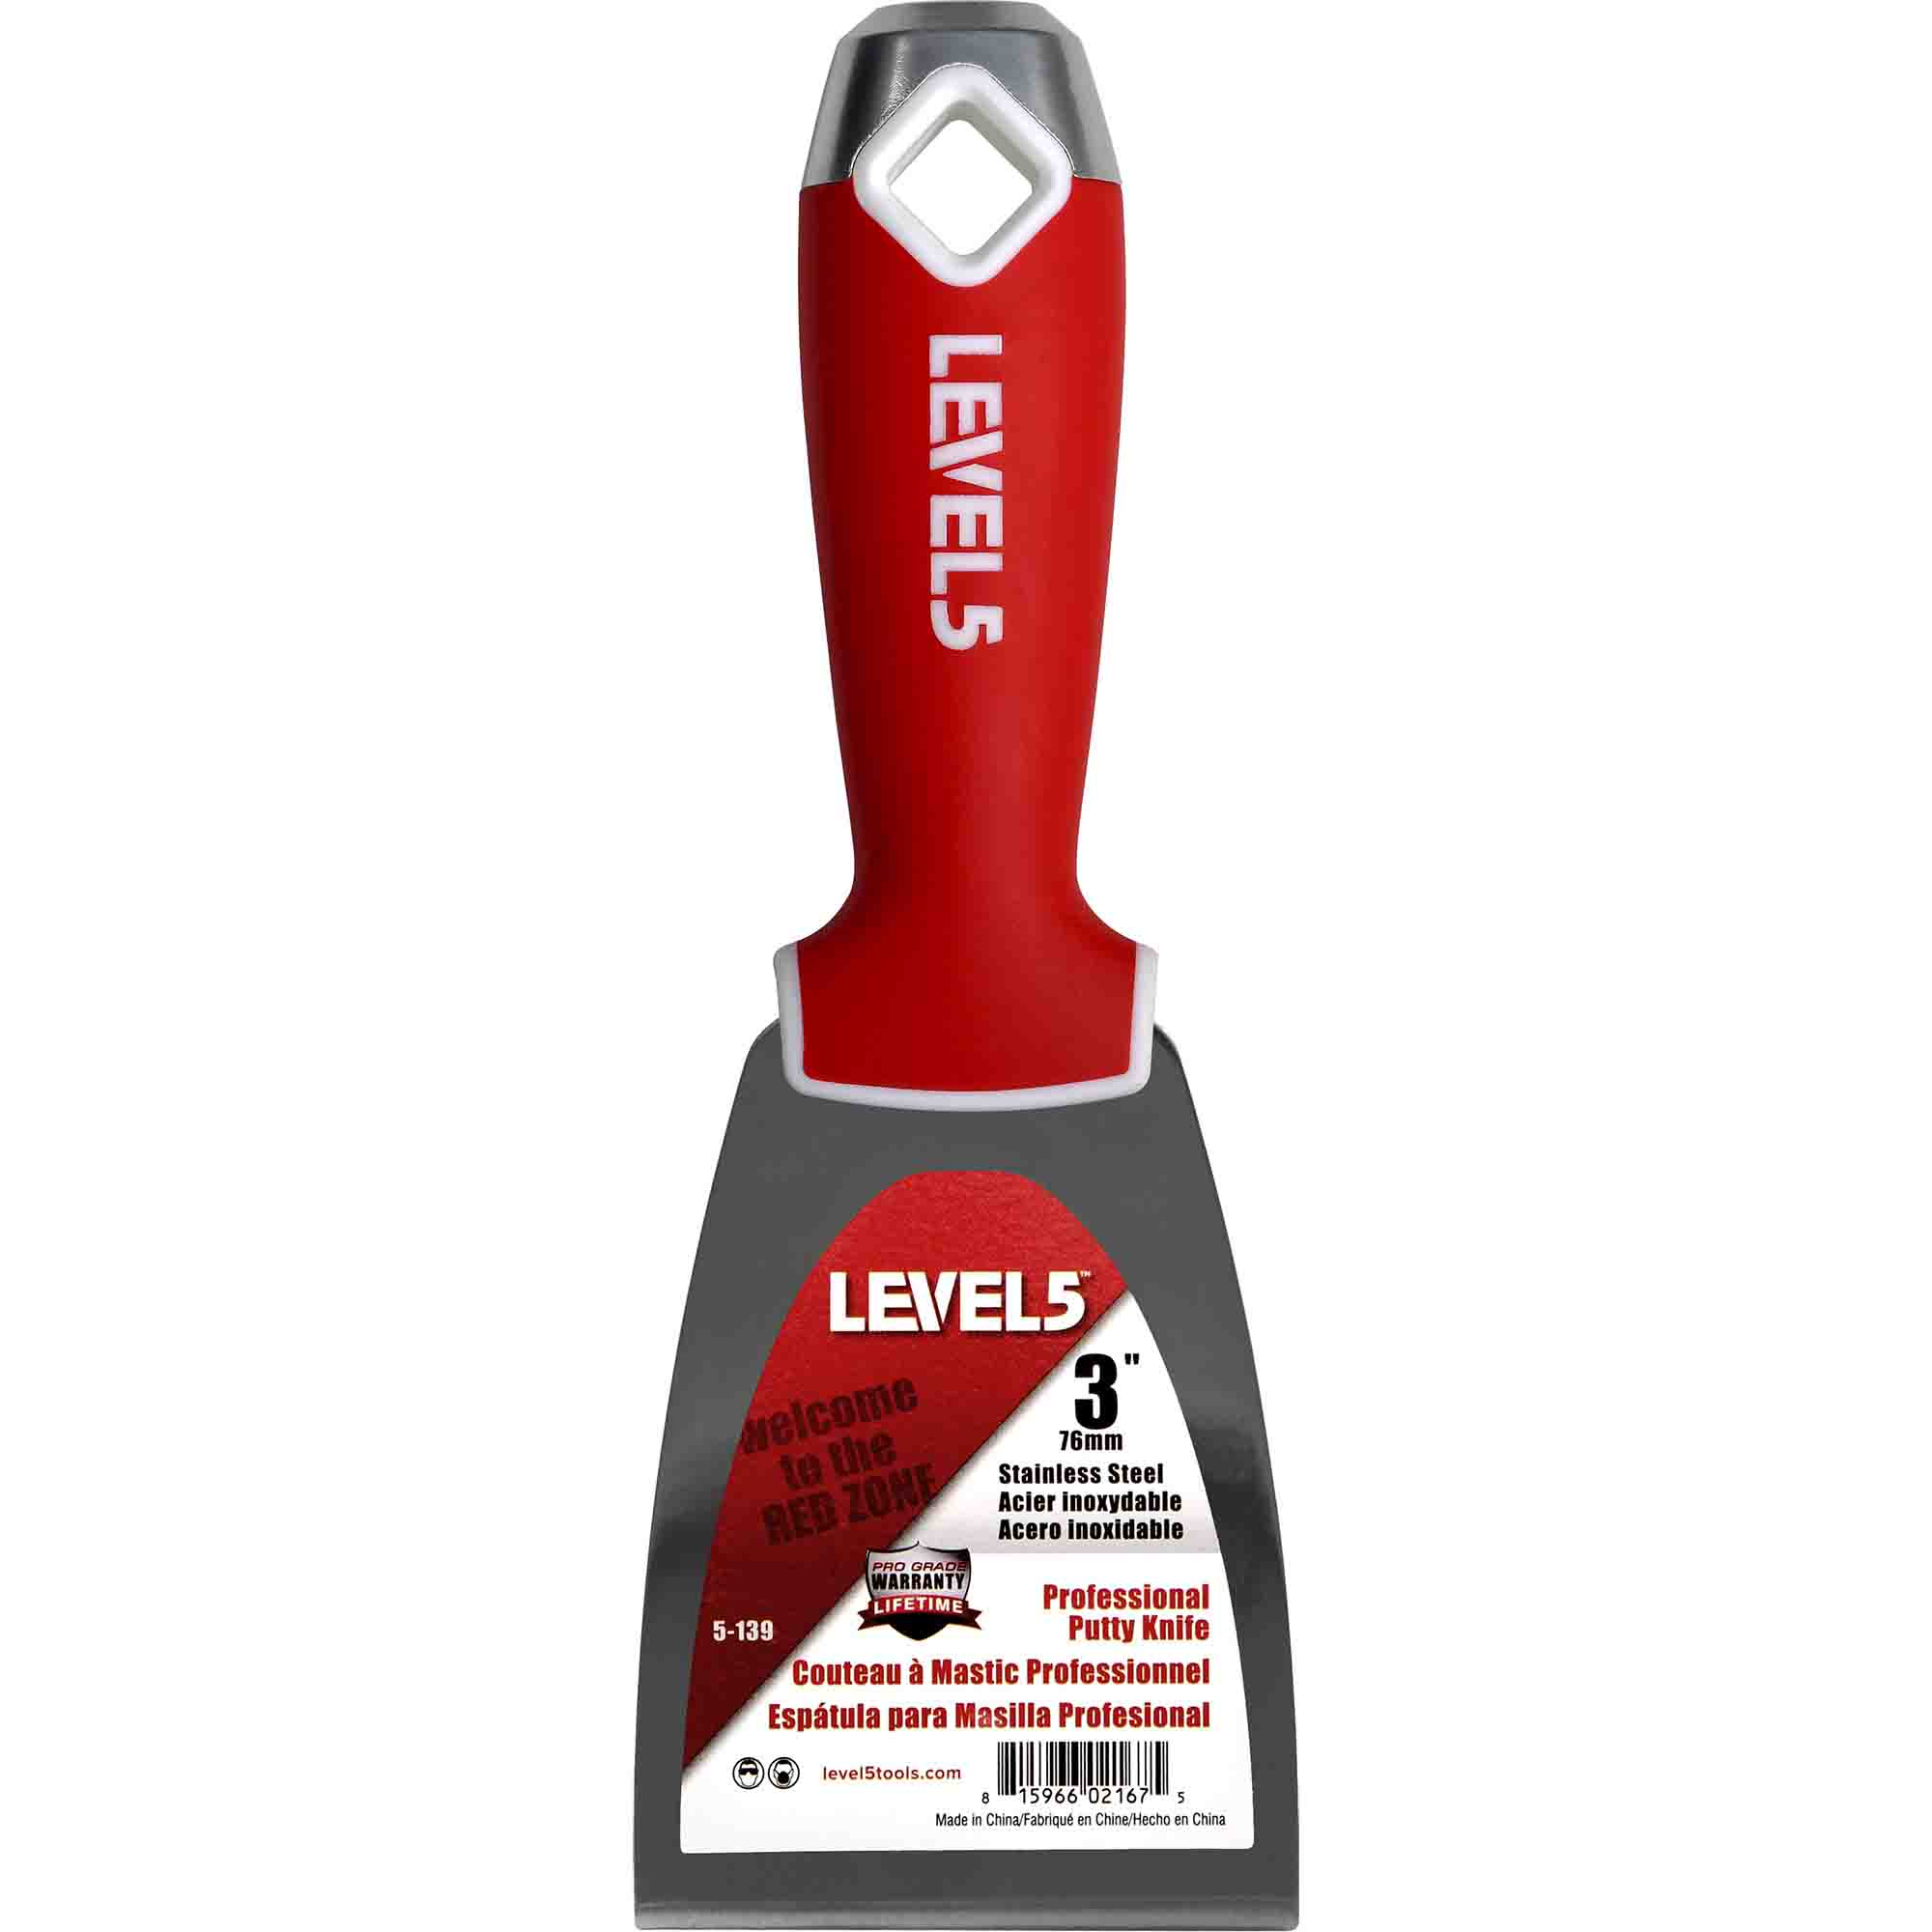 A 3-Inch Level 5 Tools Stainless Steel Drywall Joint Knife